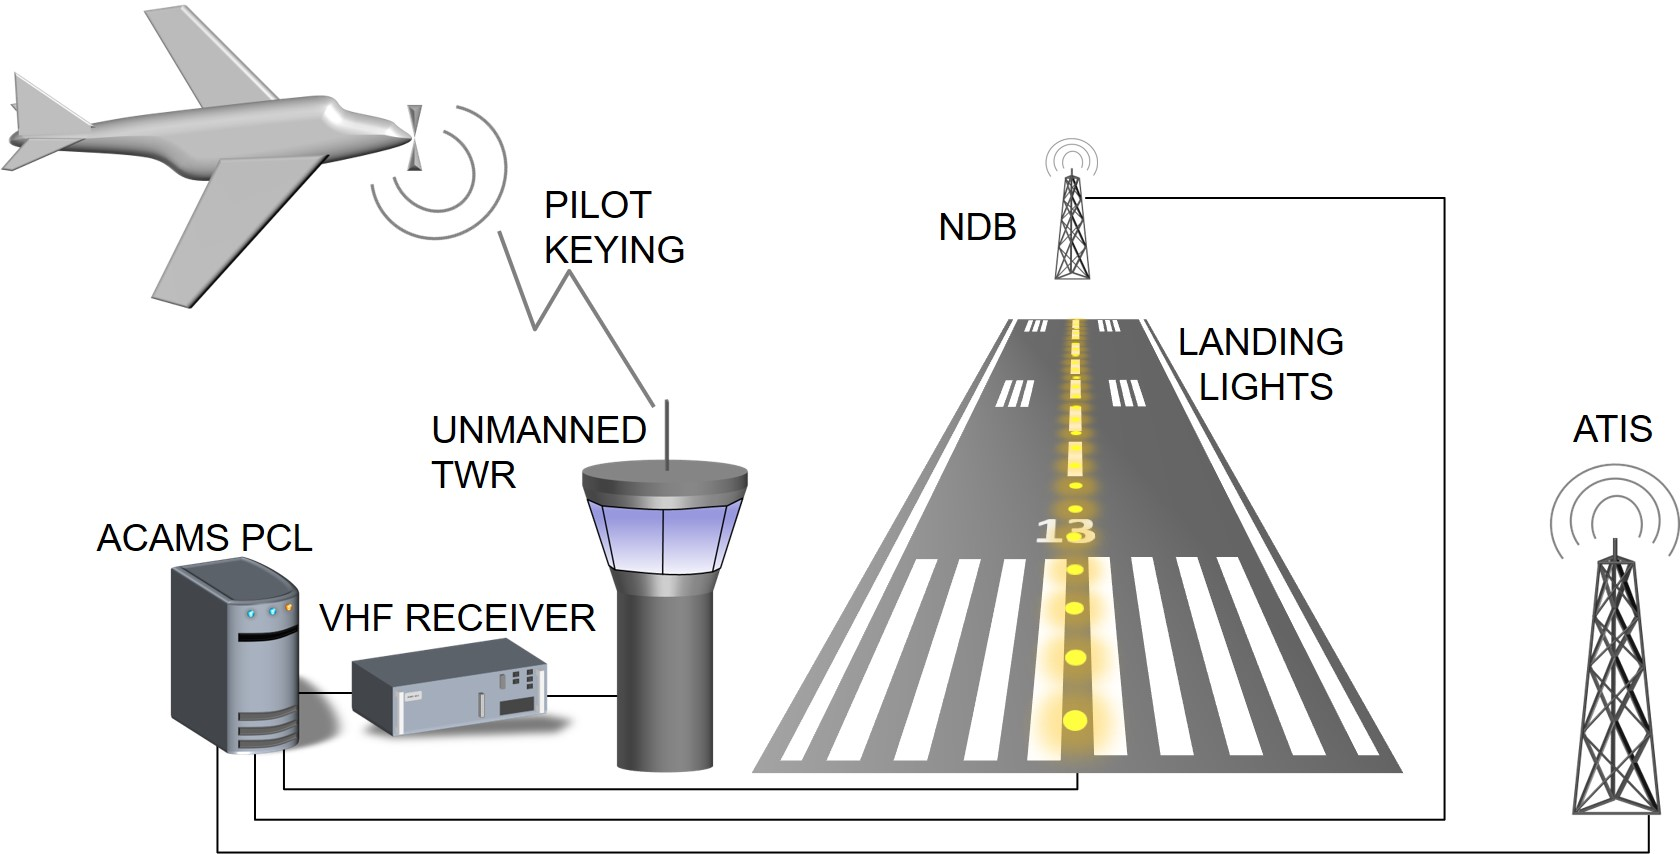 All Three Airfield Equipment Types (ATIS, NDB And AFL) Can Be Controlled By  The Pilot, Using Different Keying Signals On The Same Frequency. Idea